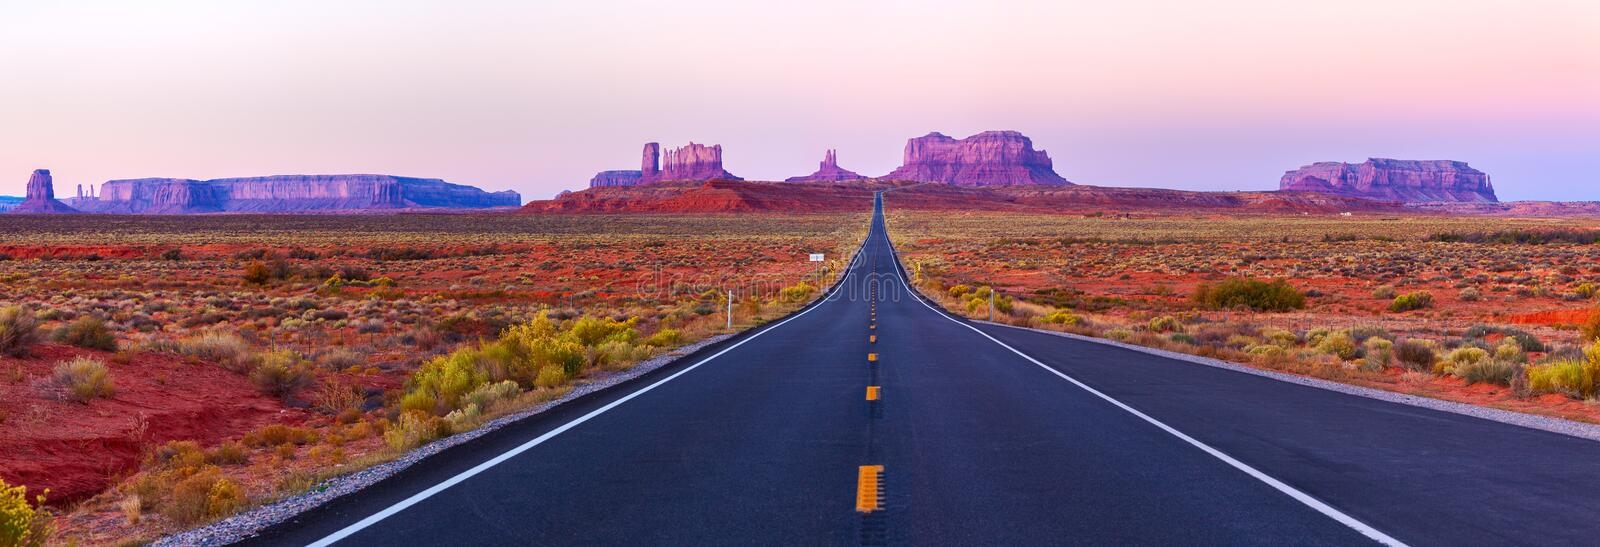 Scenic view of Monument Valley in Utah at twilight, USA.  stock photos